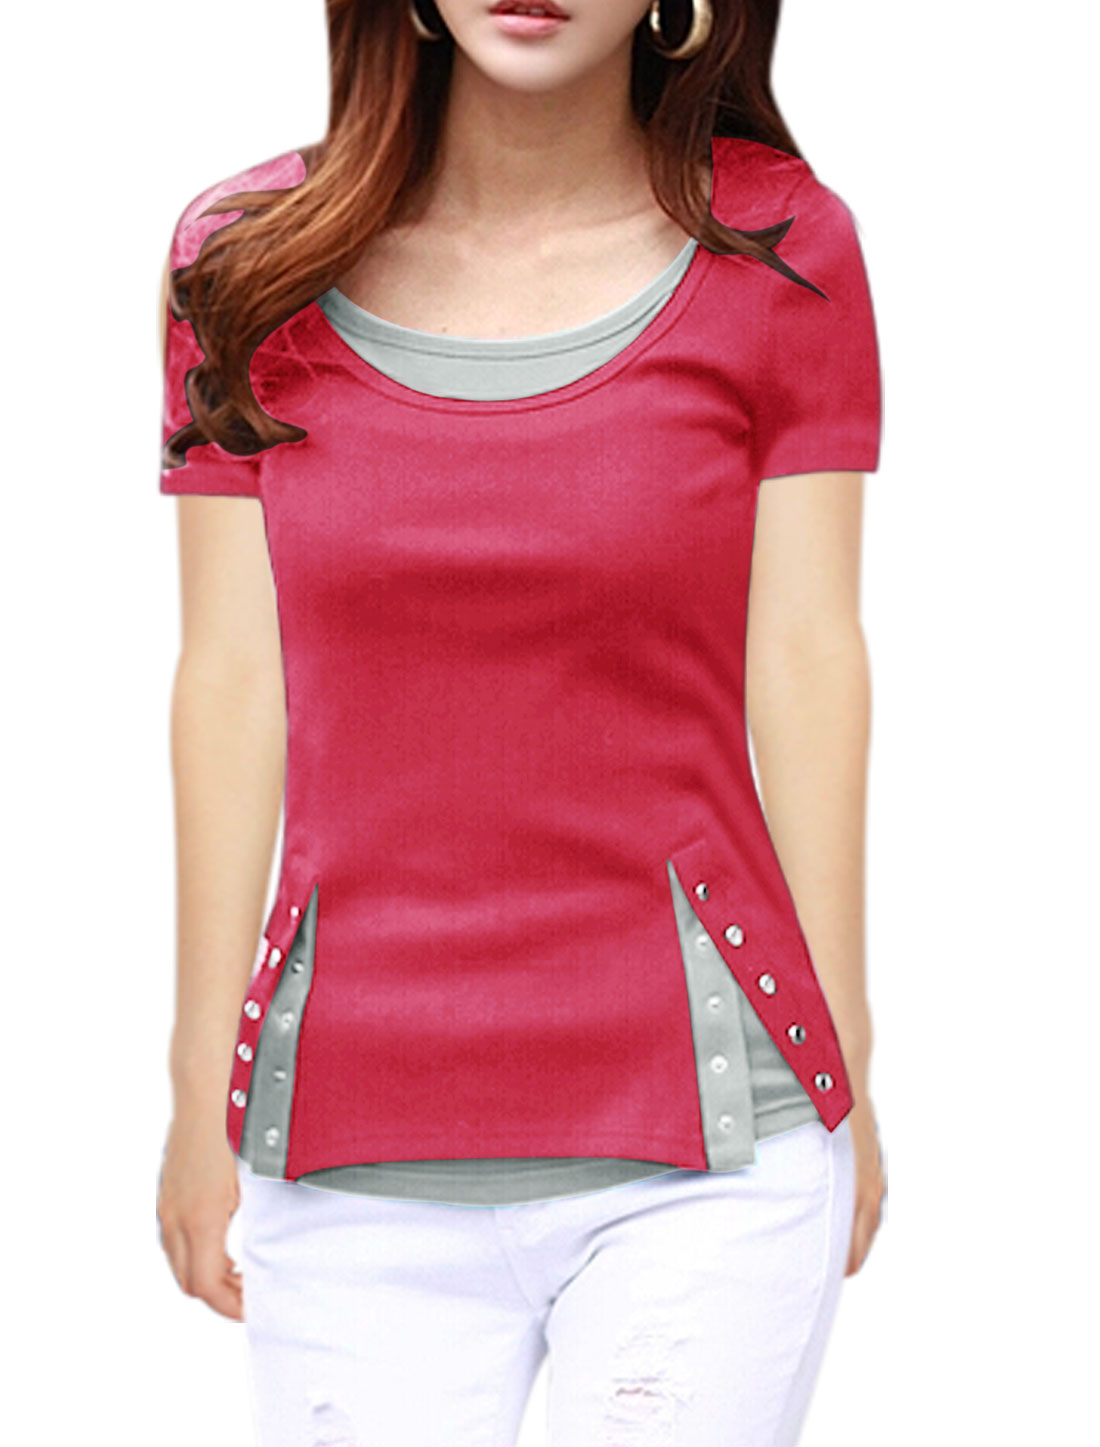 Women Short Sleeves Layered Color Blocking Tee Shirts Fuchsia S